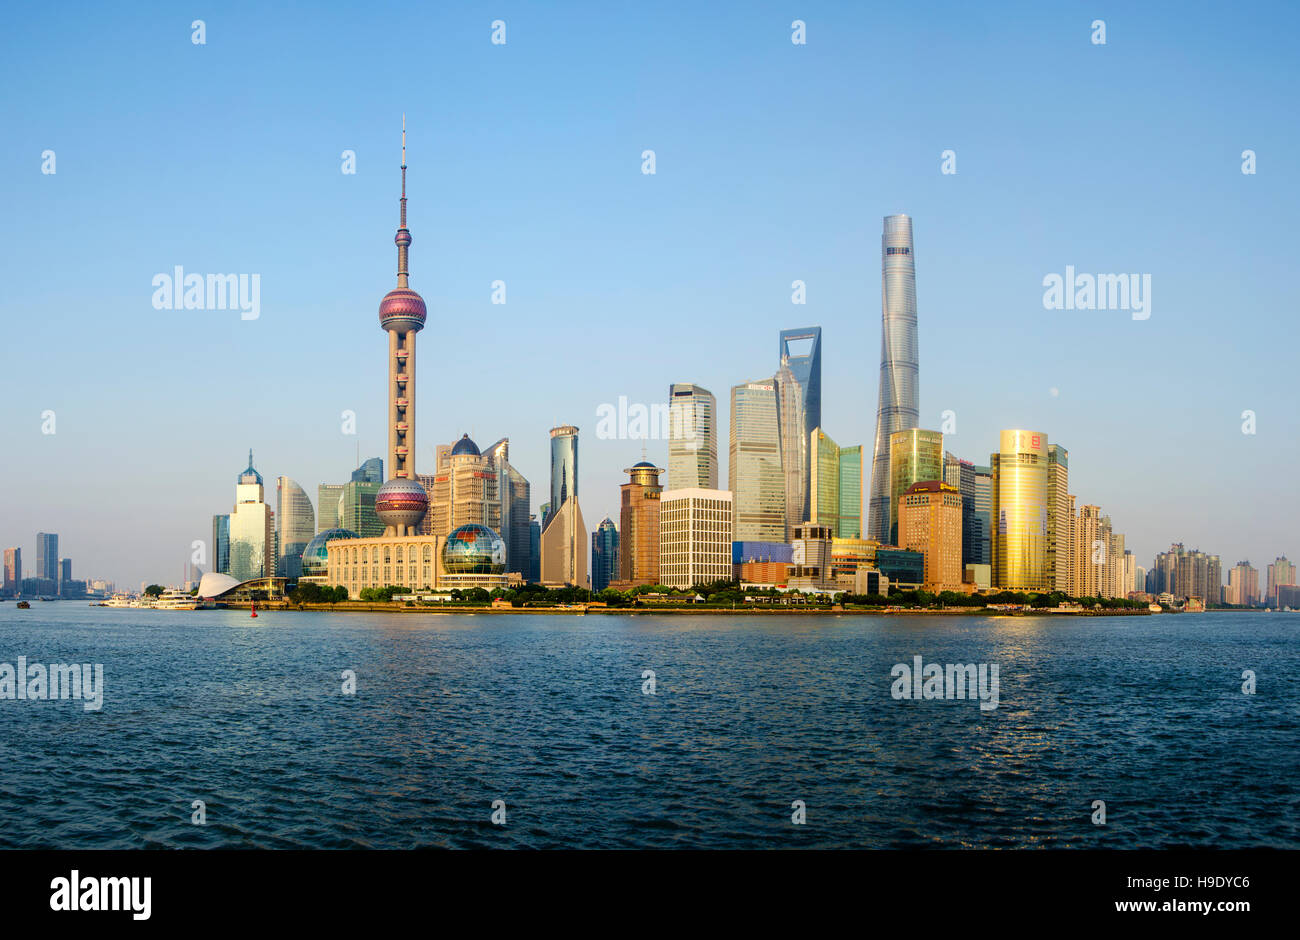 Shanghai Pudong New Skyline of Cityscape in the golden sunshine. The Tallest building is Shanghai Tower located - Stock Image